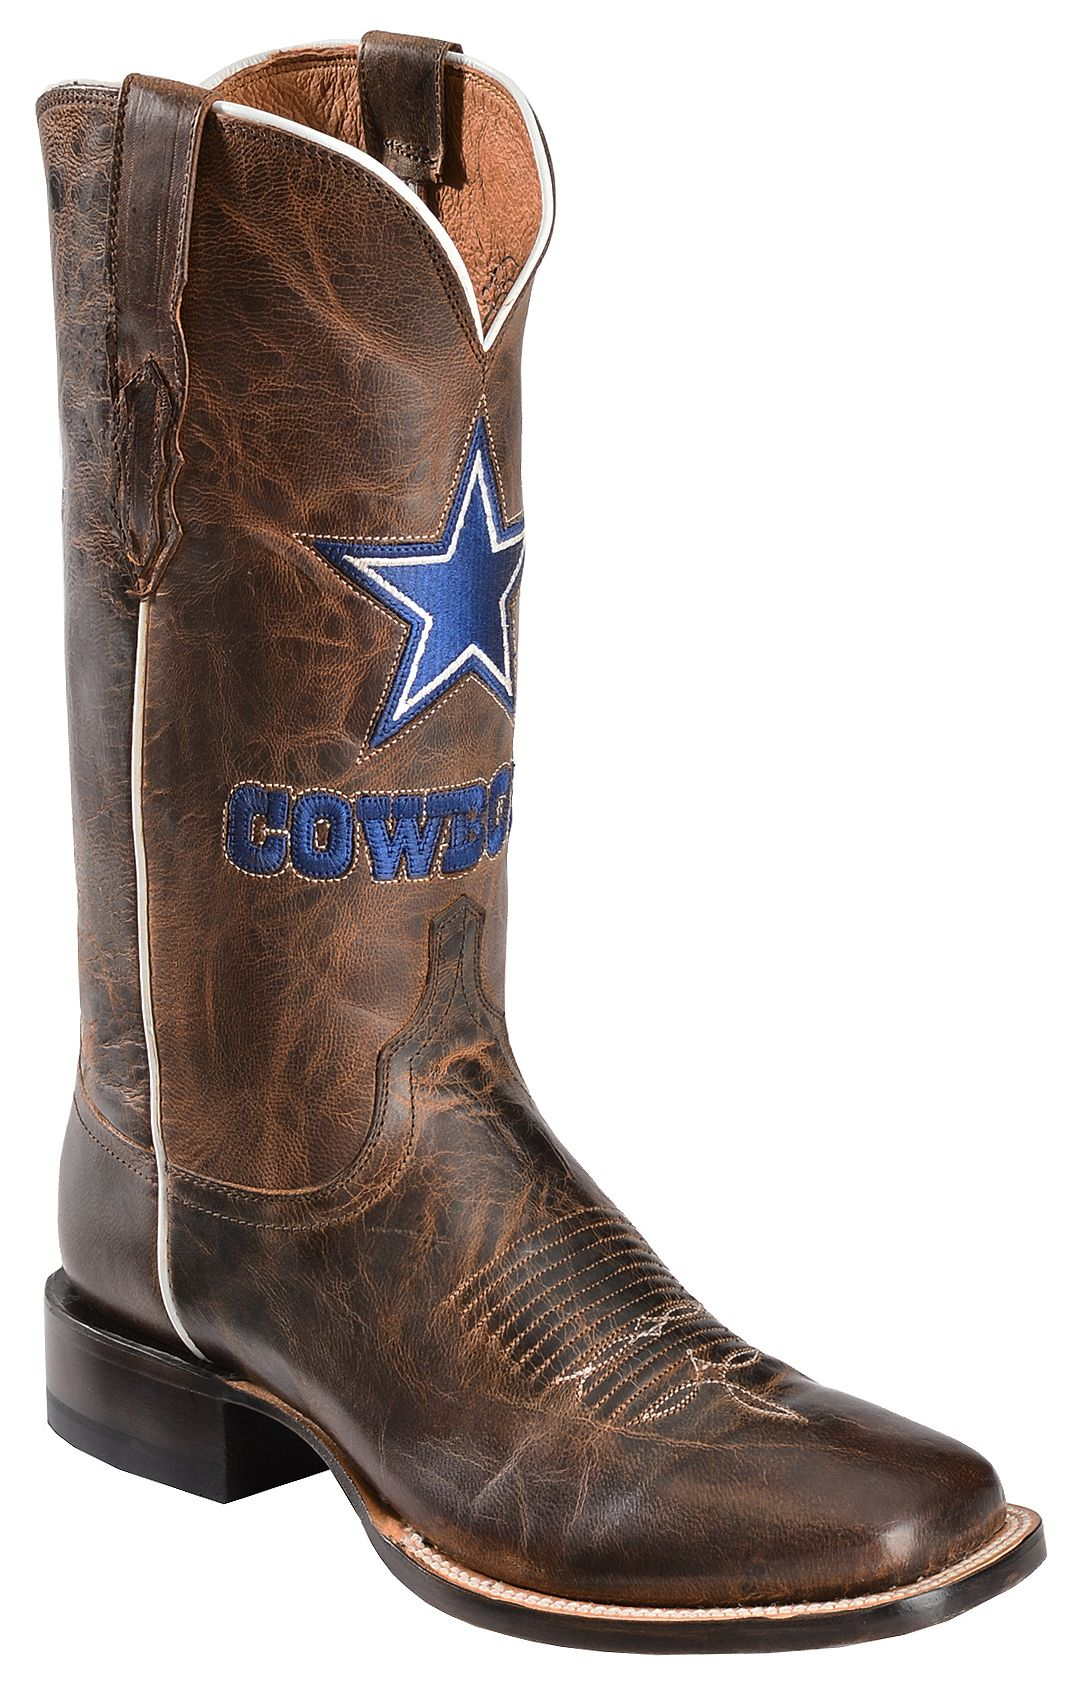 Lucchese Handcrafted 1883 Dallas Cowboys Mad Goat Horseman